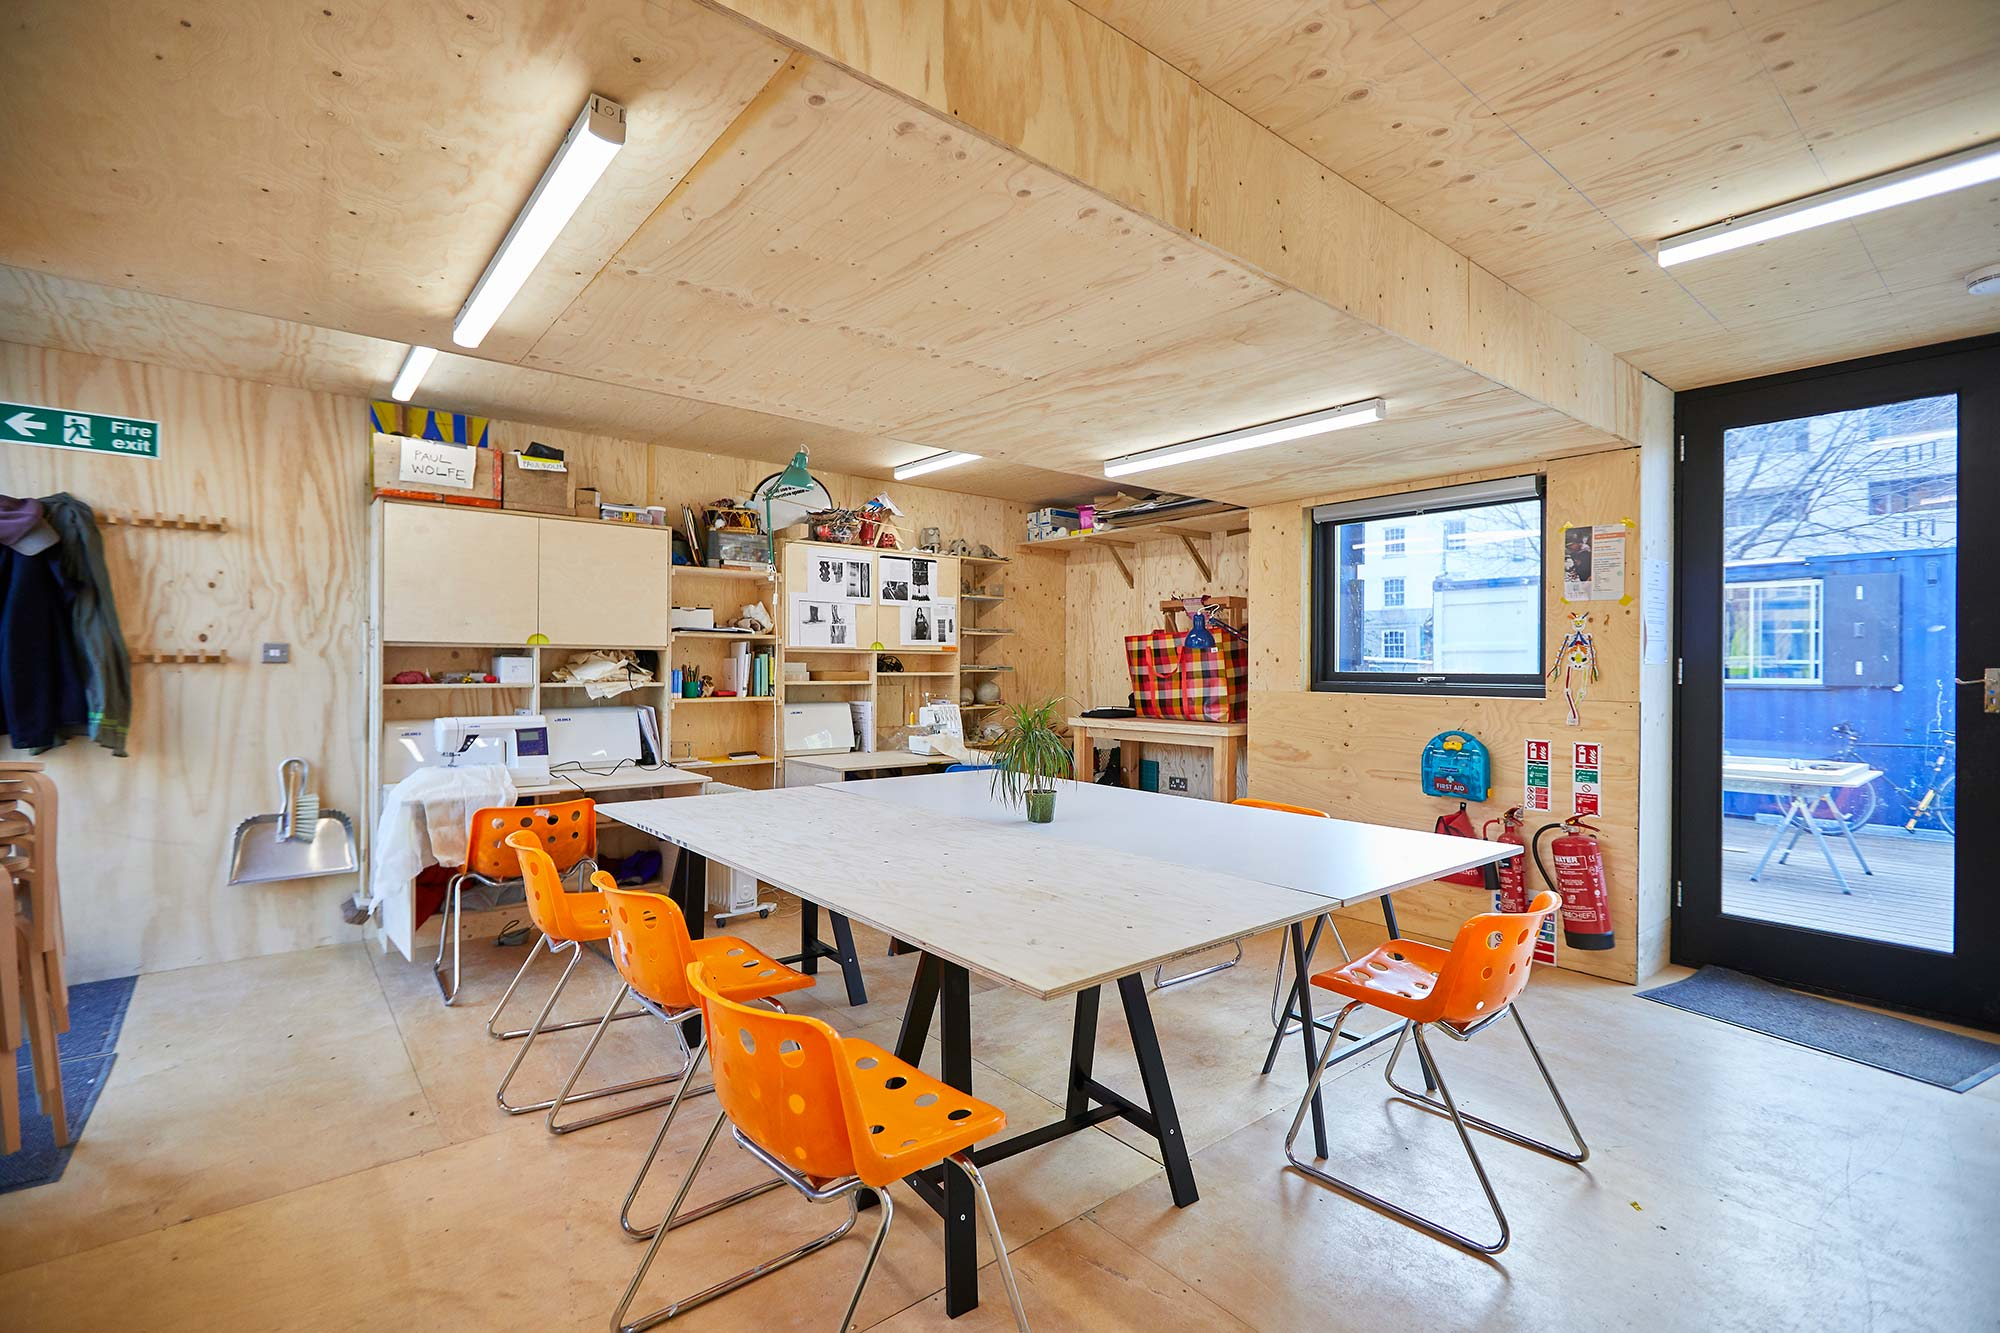 Studio space with making tools, a table and orange chairs